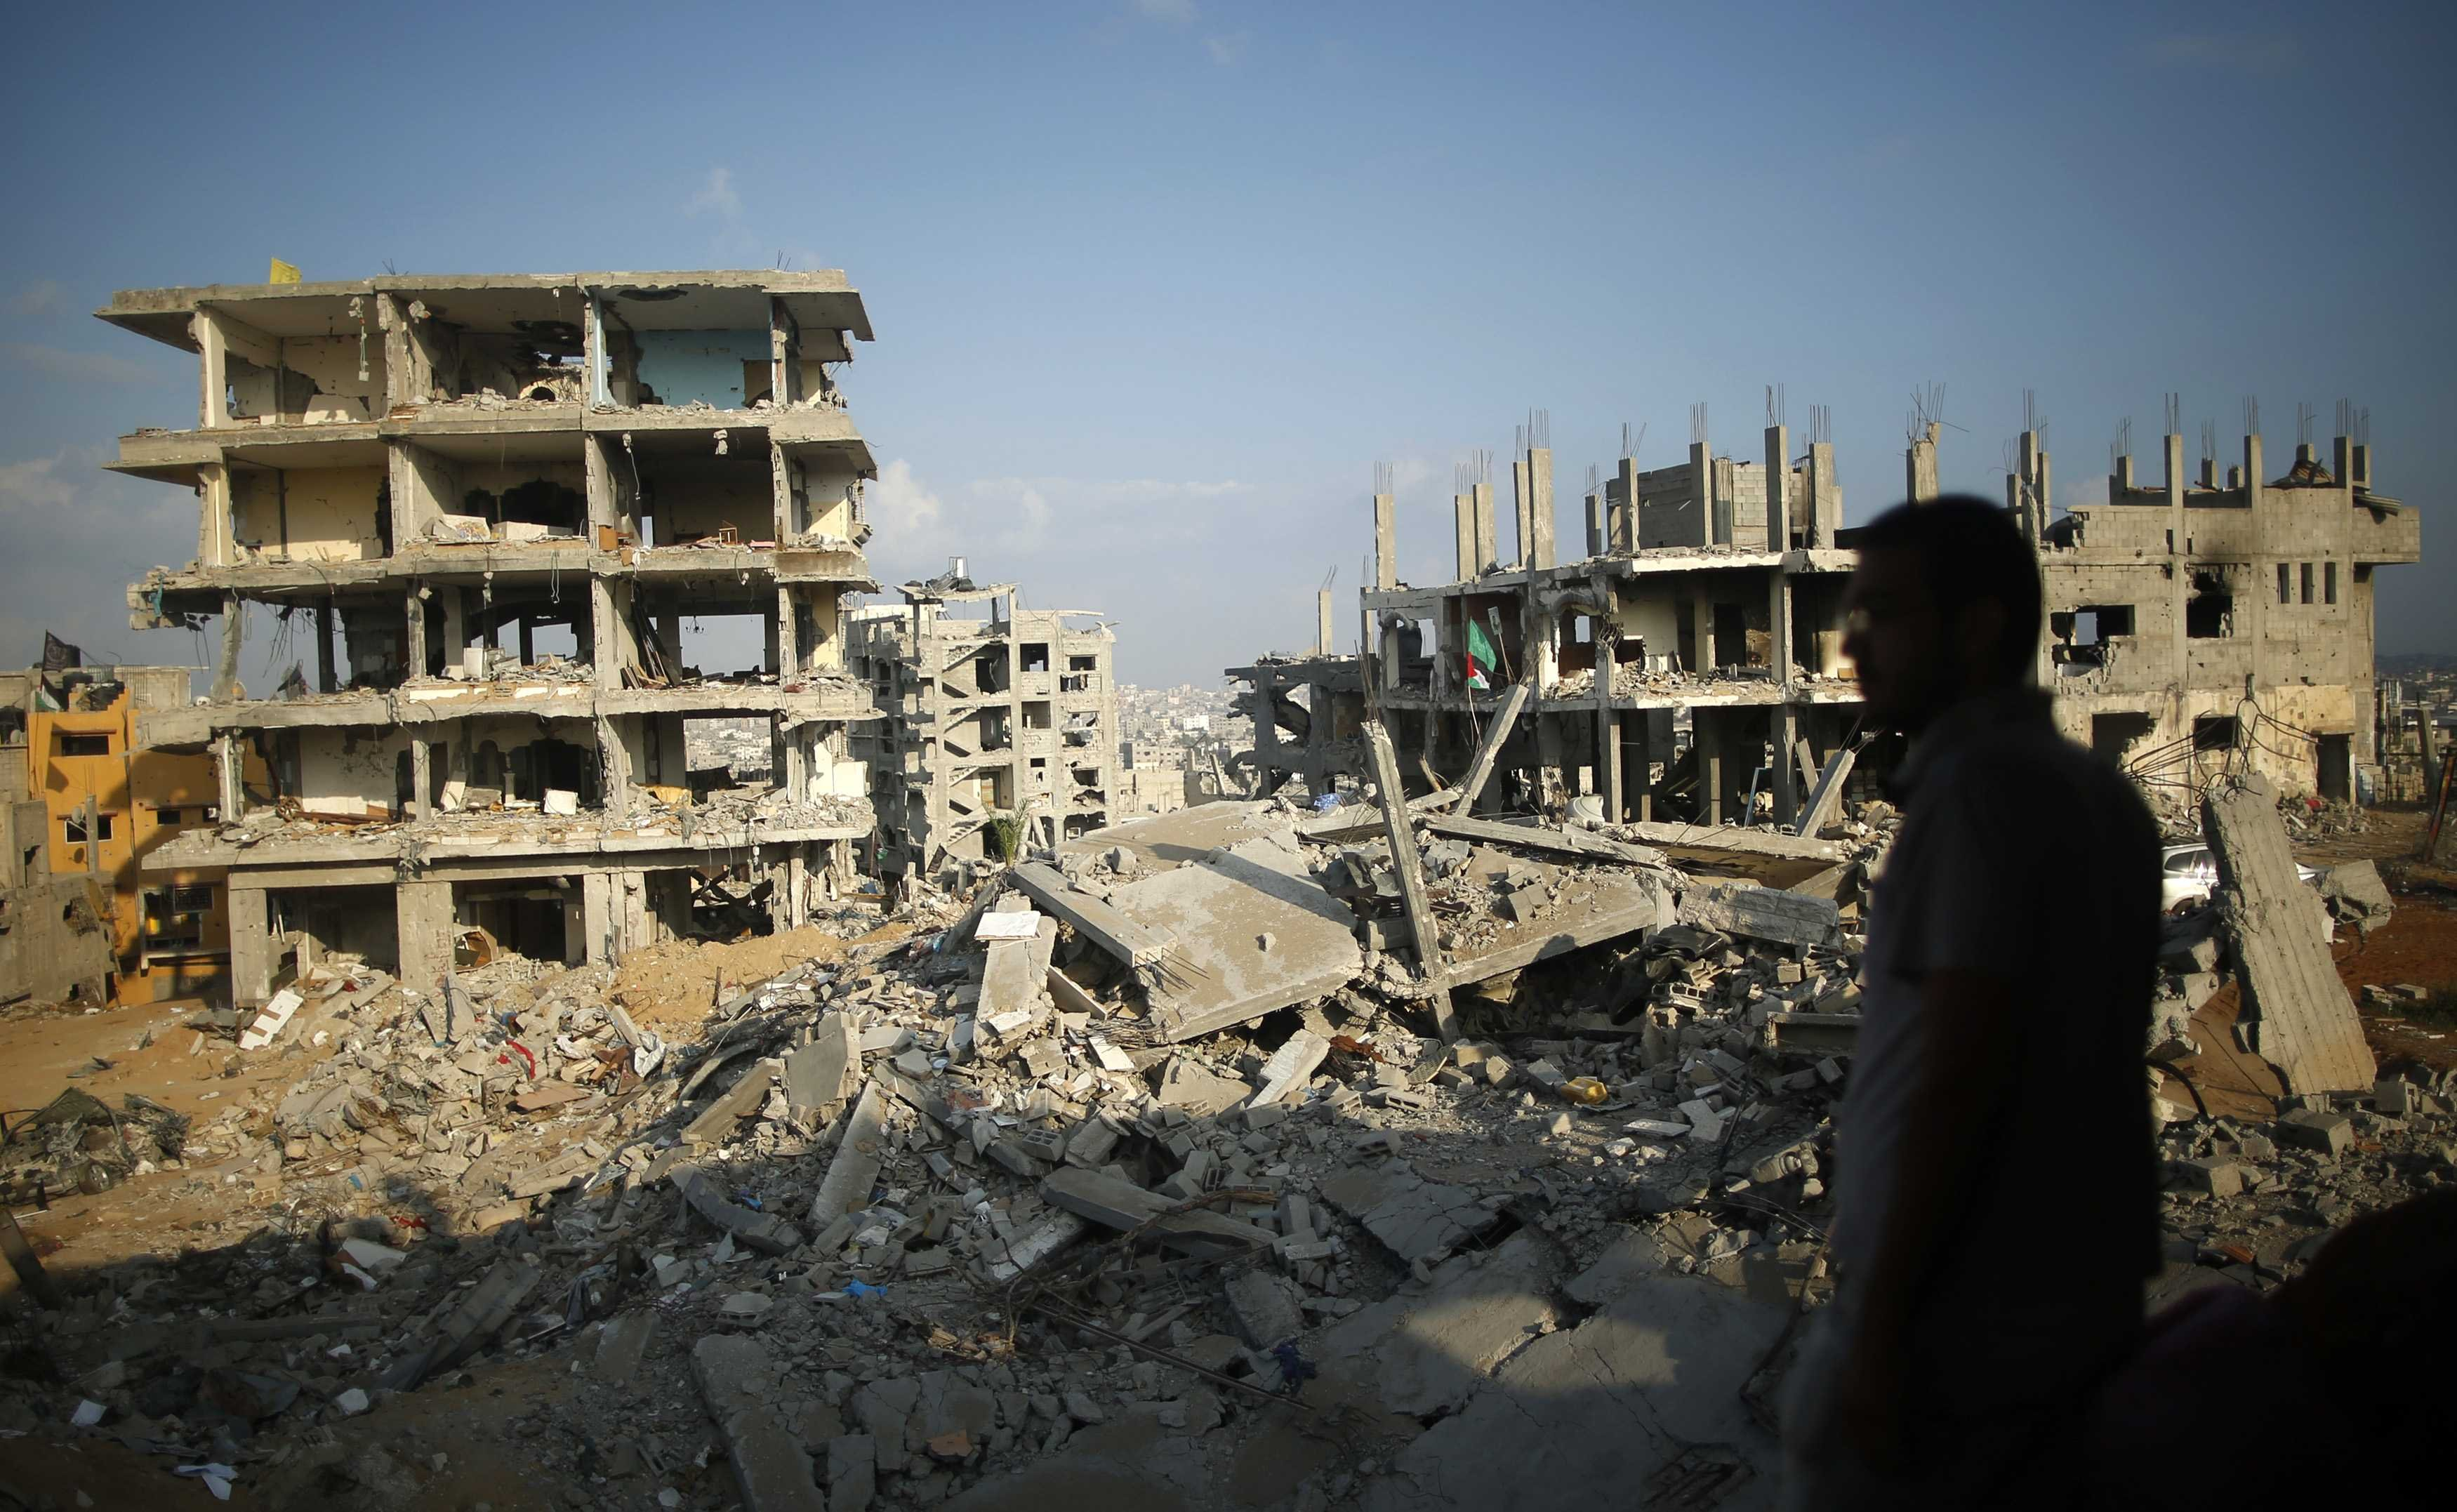 A Palestinian man stands atop the rubble of his house as he looks at the ruins of his neighborhood that was badly damaged during the 50-day war between the Hamas militant movement and Israel, in the east of Gaza City on Oct. 12, 2014.